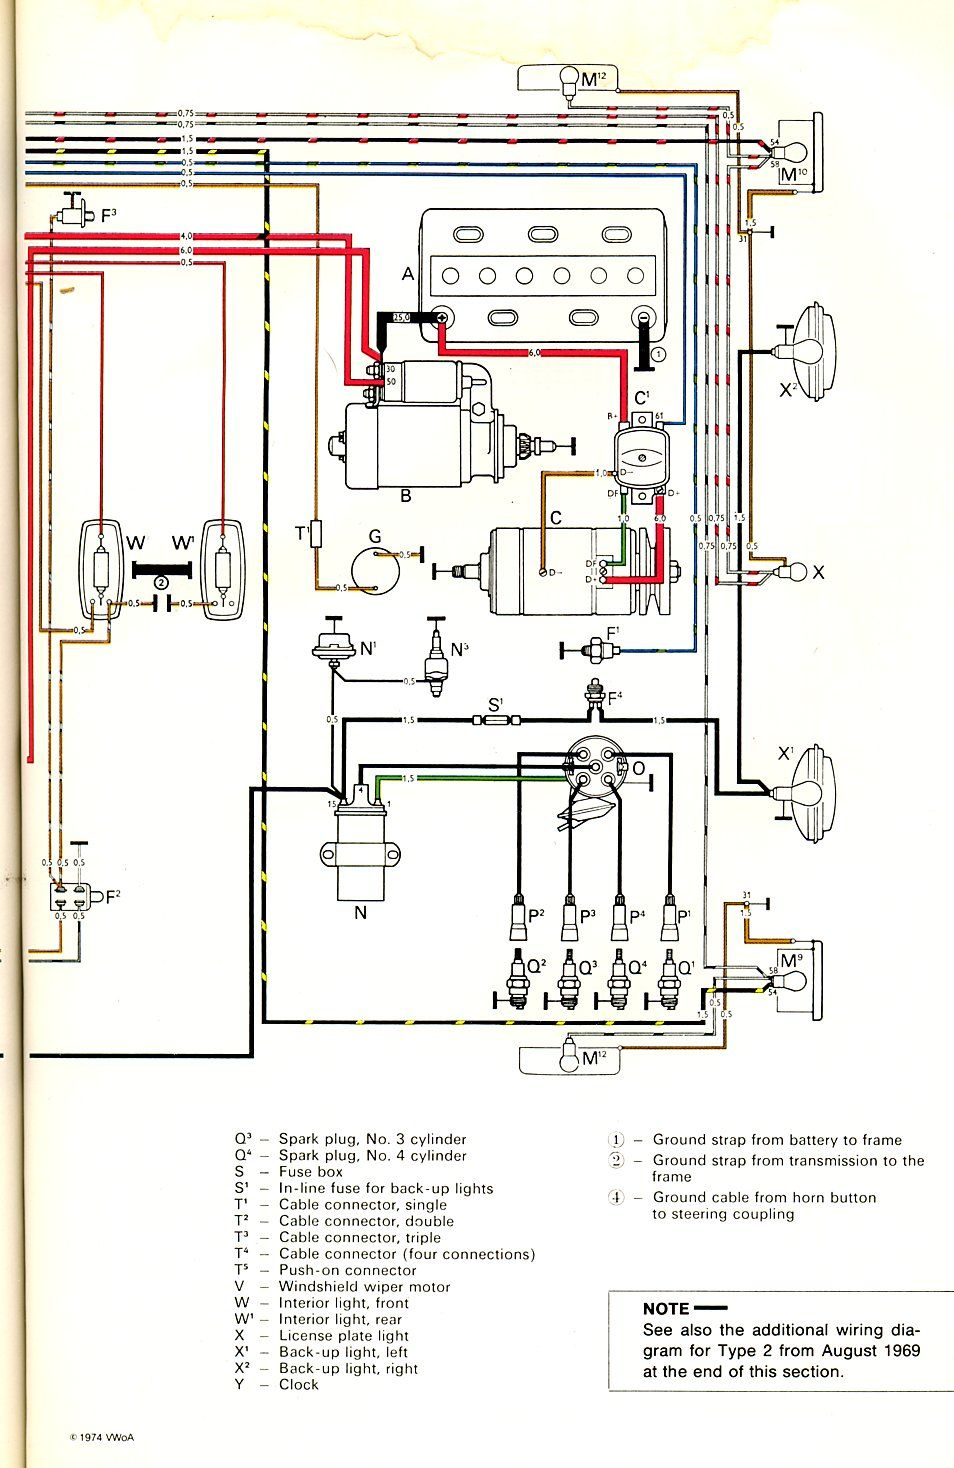 Electrical wiring drawing Electrical Work, Electrical Projects, Electrical  Outlets, Electrical Maintenance, Hvac